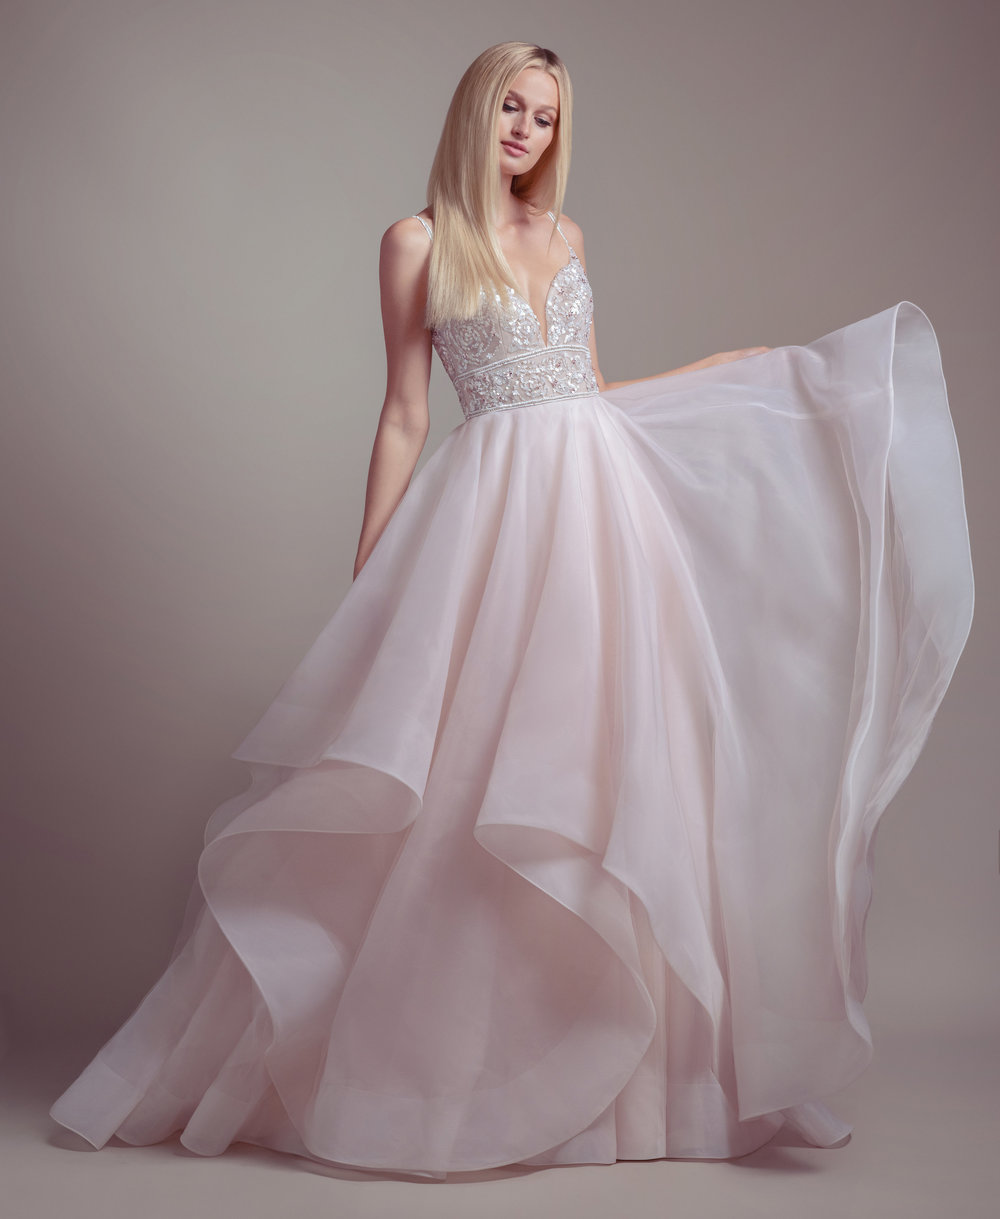 You don't need rose colored glasses to love this blush colored wedding dress.